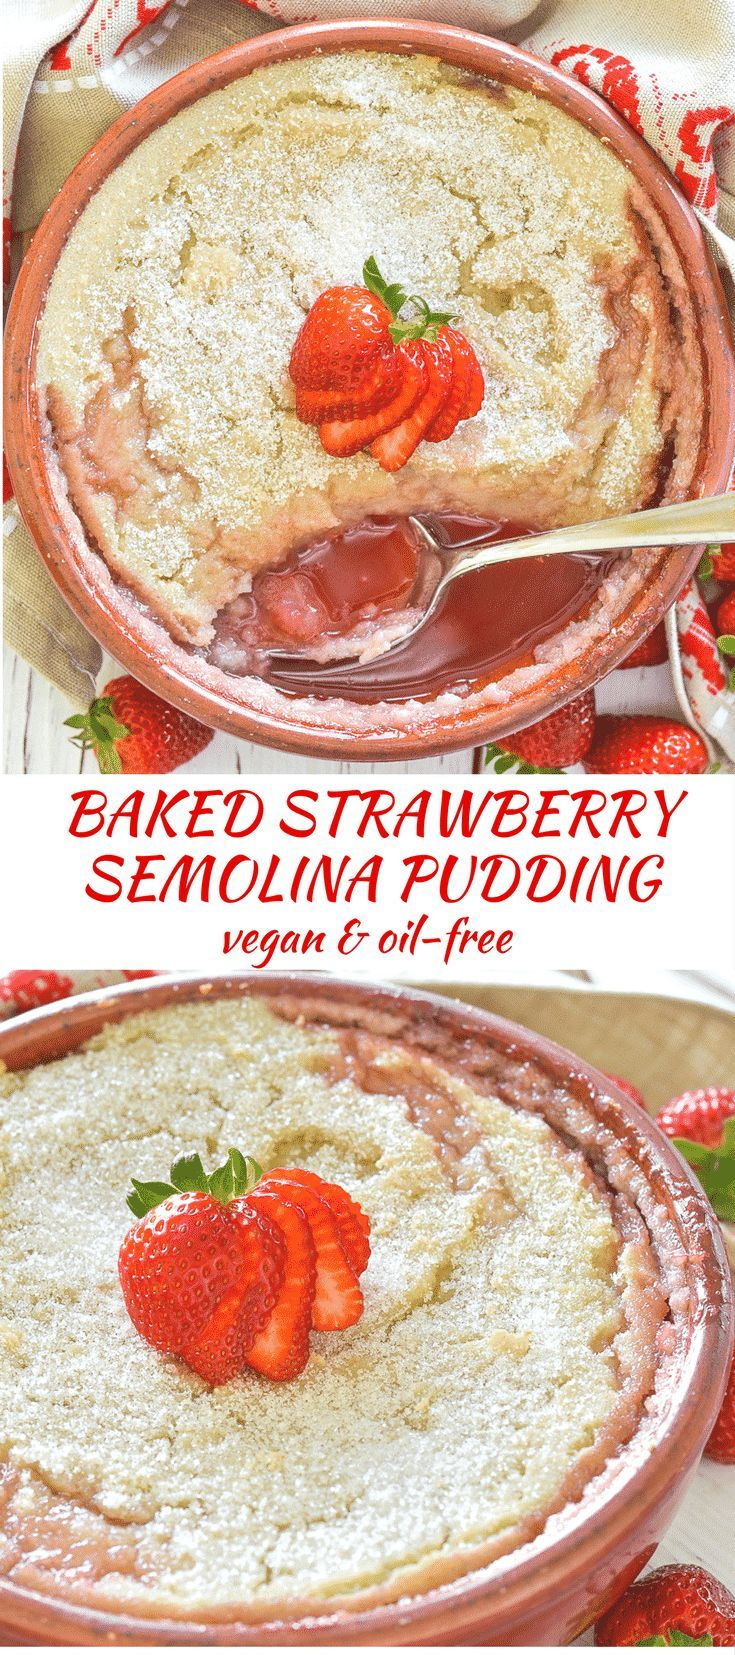 Semolina pudding but not as you know it......Sweet strawberries are baked under sugar encrusted semolina until bubbling & saucy. The pudding becomes almost sponge like & is so comforting & delicious!  via @avirtualvegan